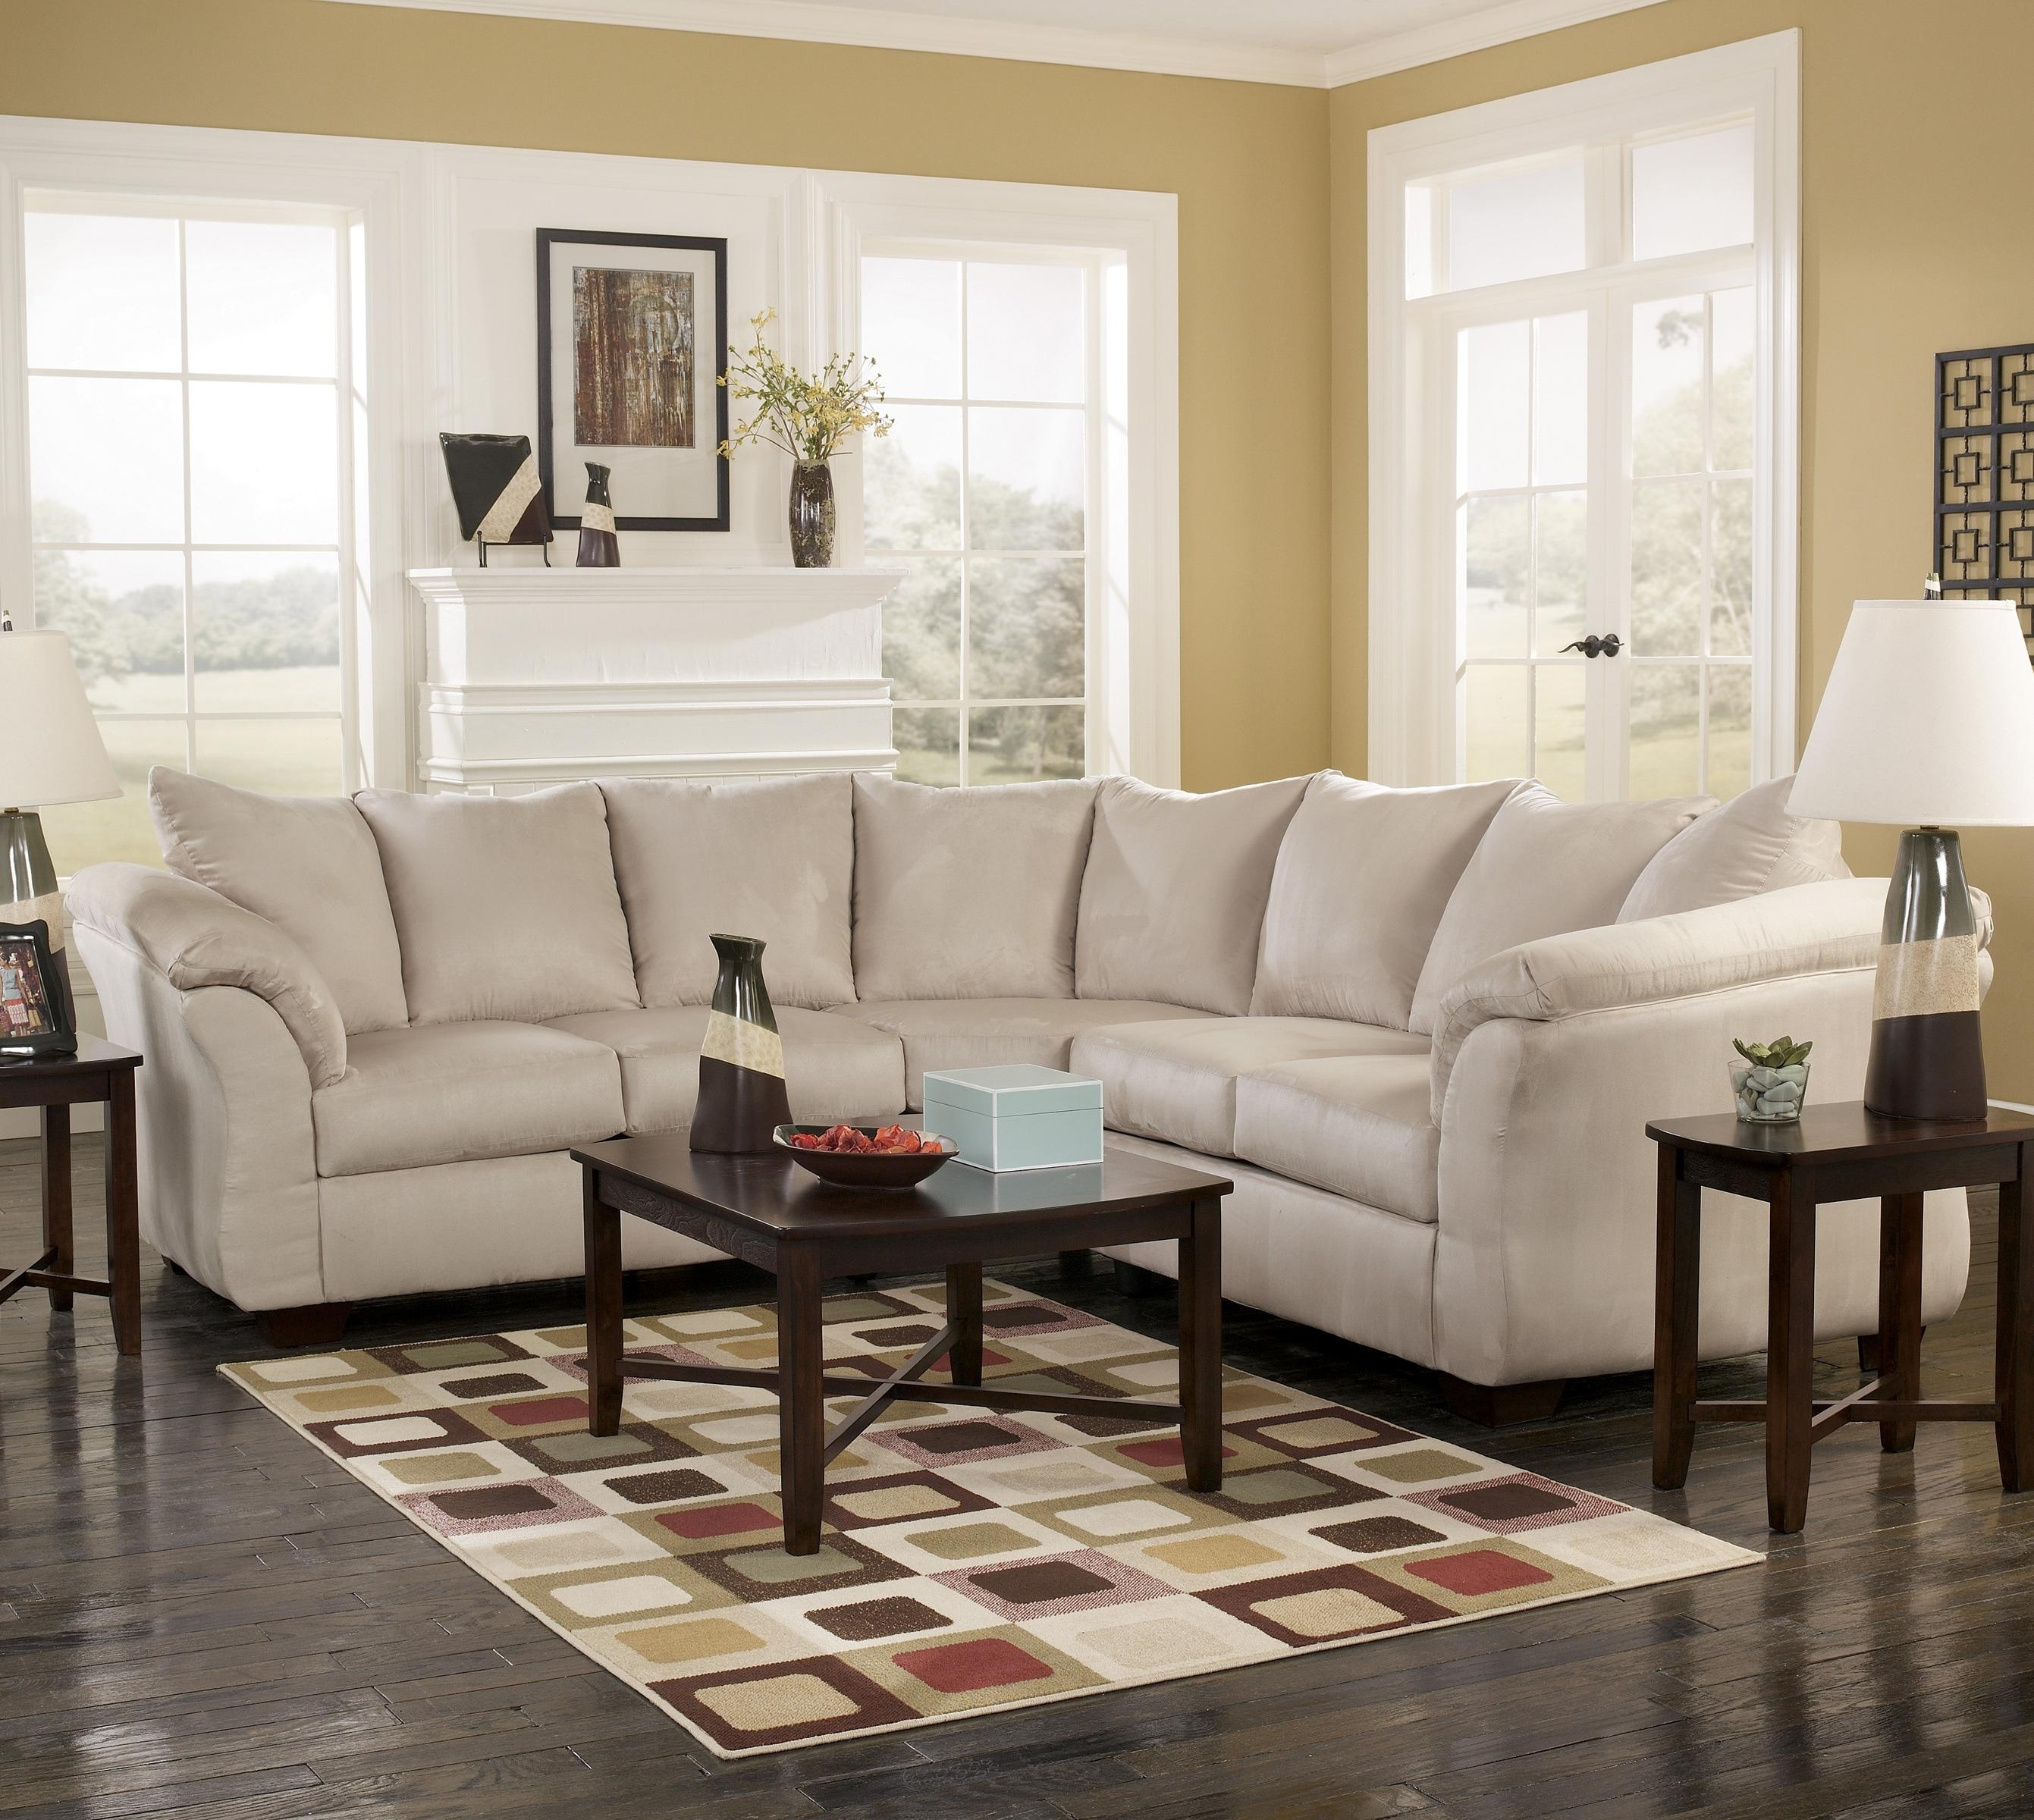 Signature Designashley Darcy – Stone Contemporary Sectional Sofa For Janesville Wi Sectional Sofas (Image 10 of 10)